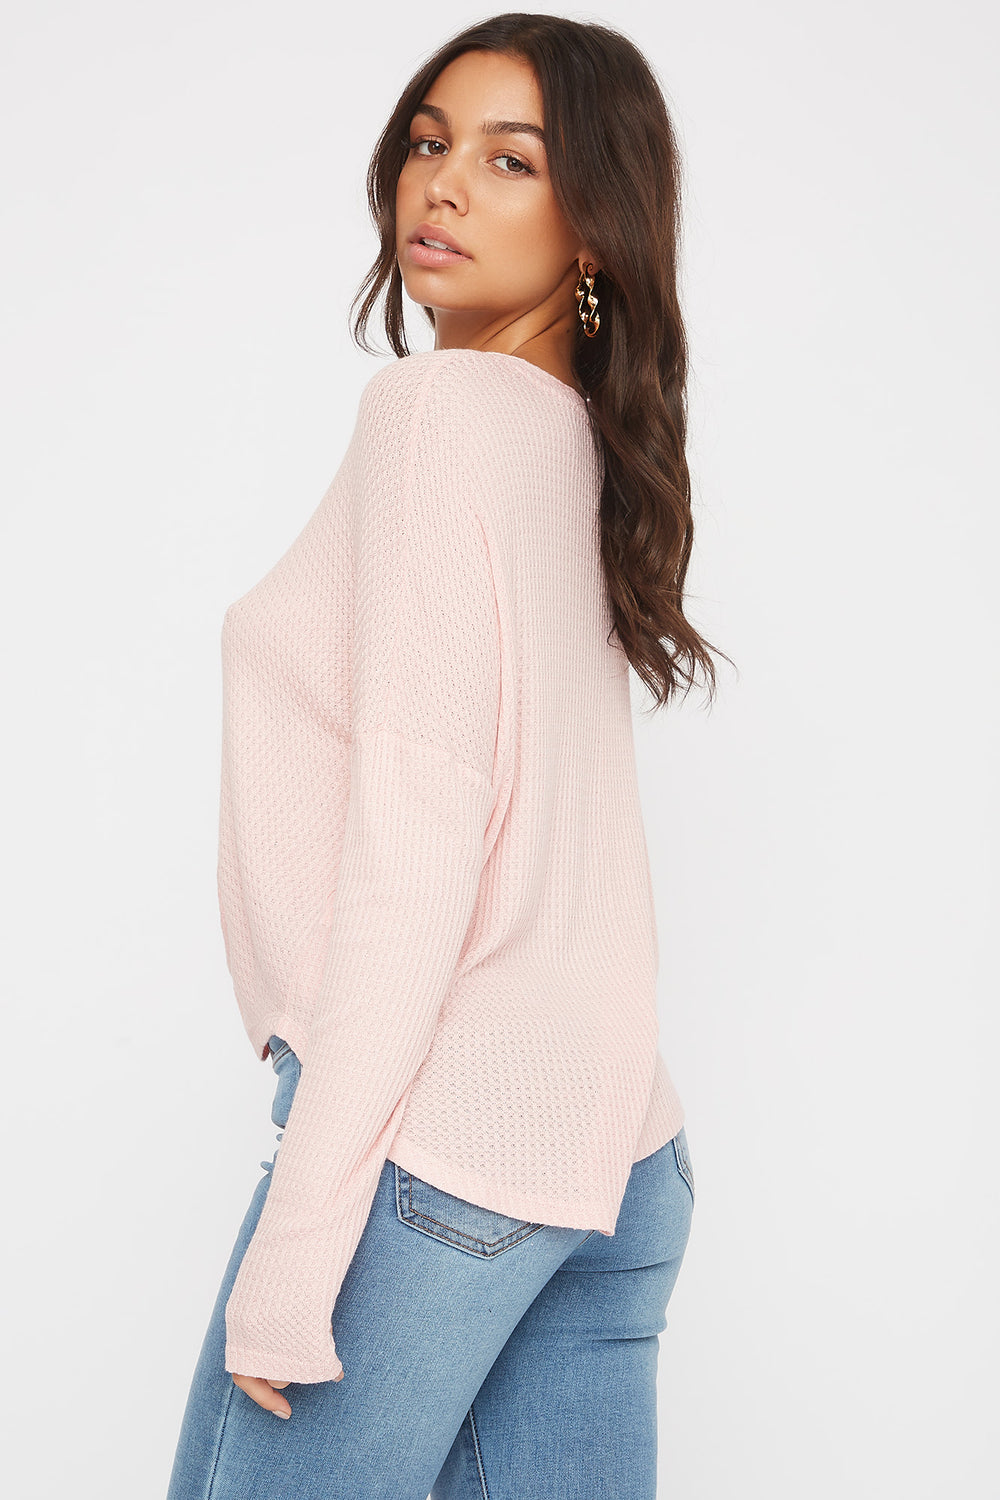 Waffle Knit Button-Up Long Sleeve Shirt Pink